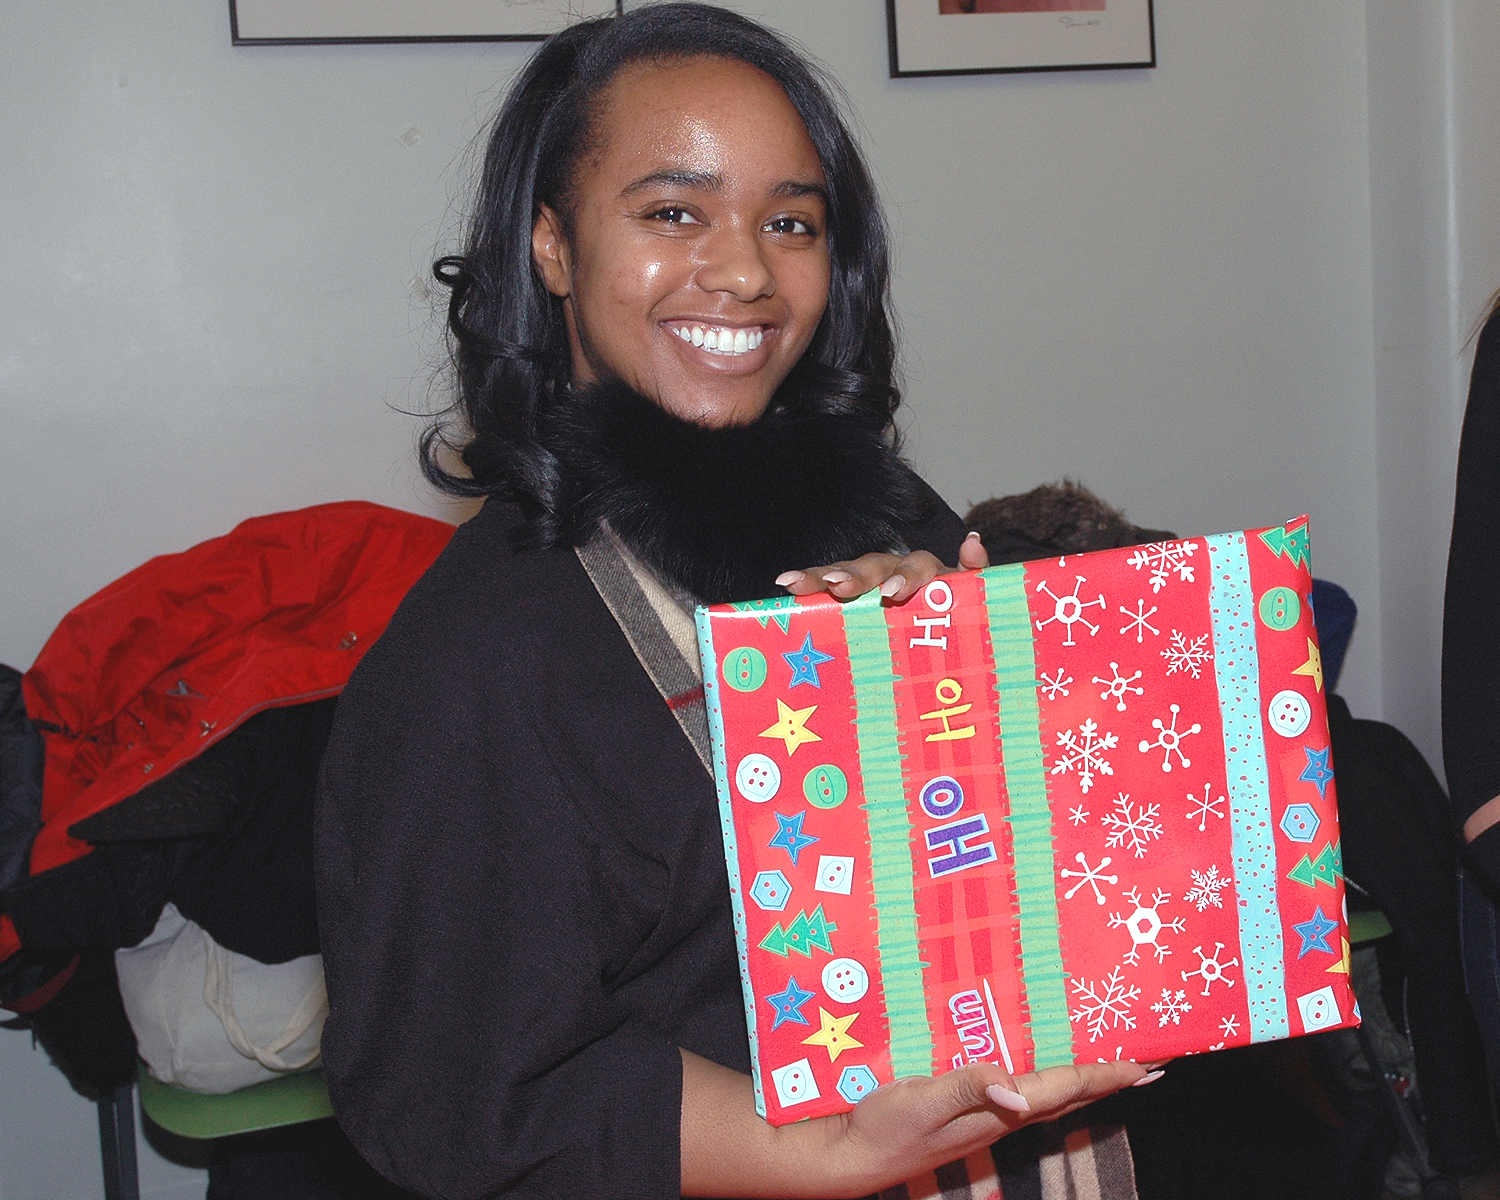 A volunteer showing the results of her gift wrapping